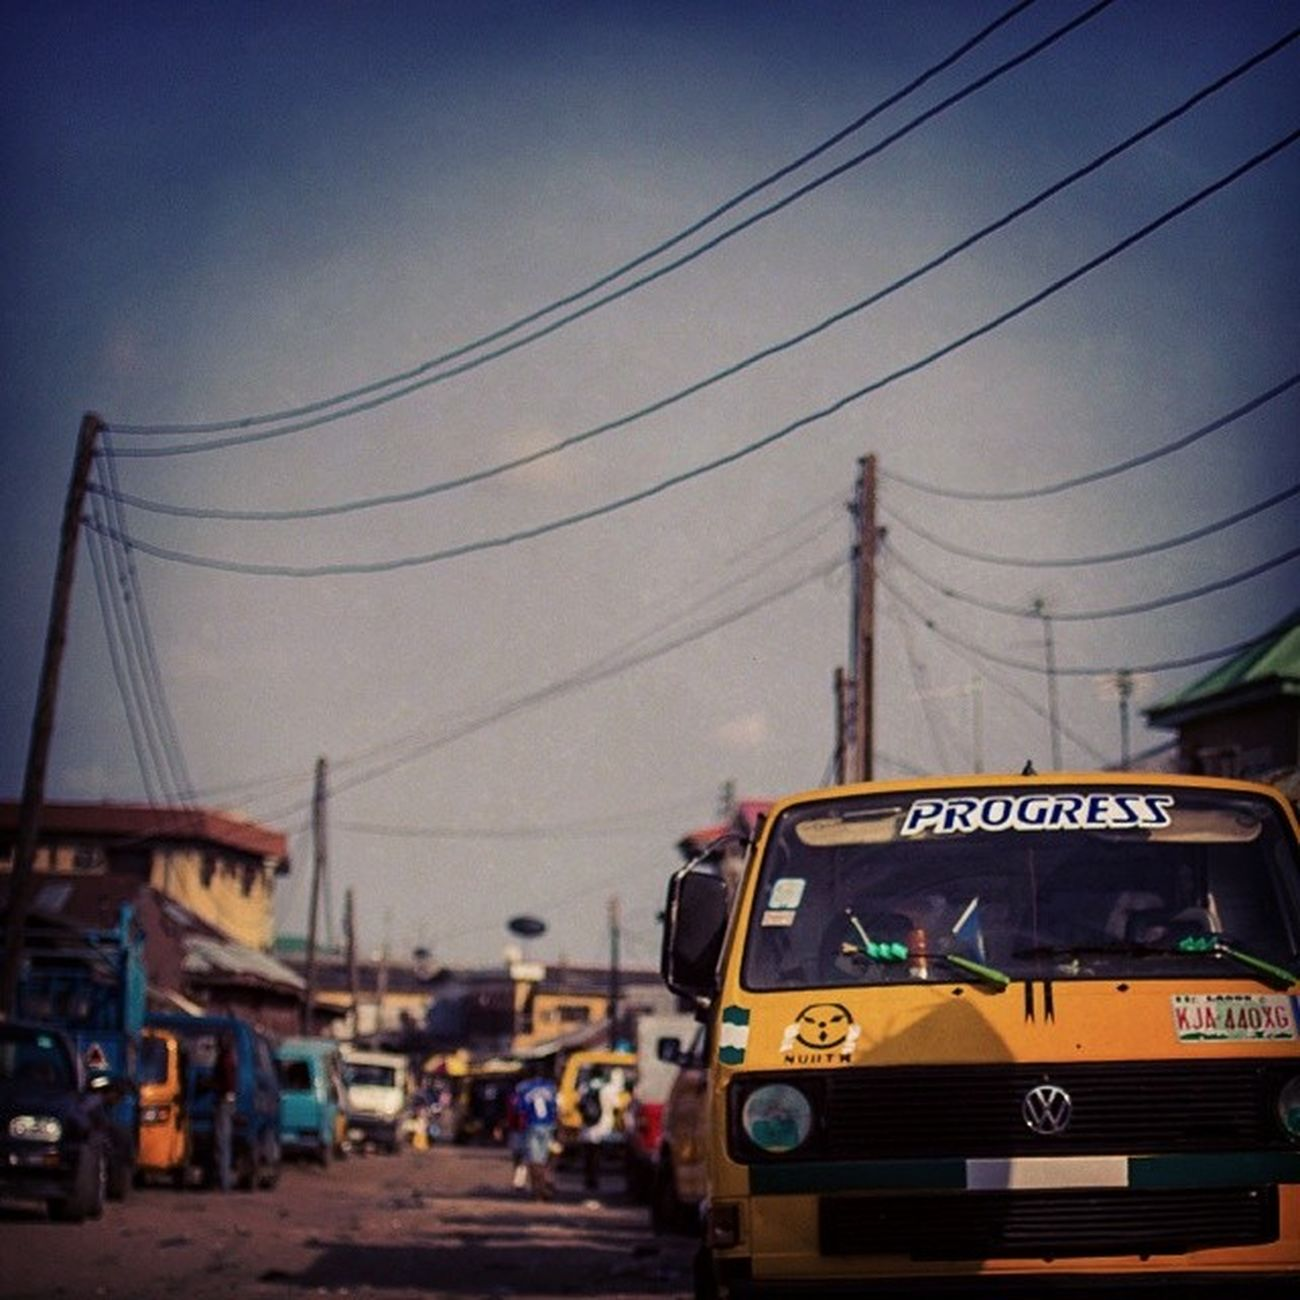 Progress in Africa needs Electricity! Danfo Ibmresearchafrica Ibmenergy Streetphotography Nigeria Lagos Africa